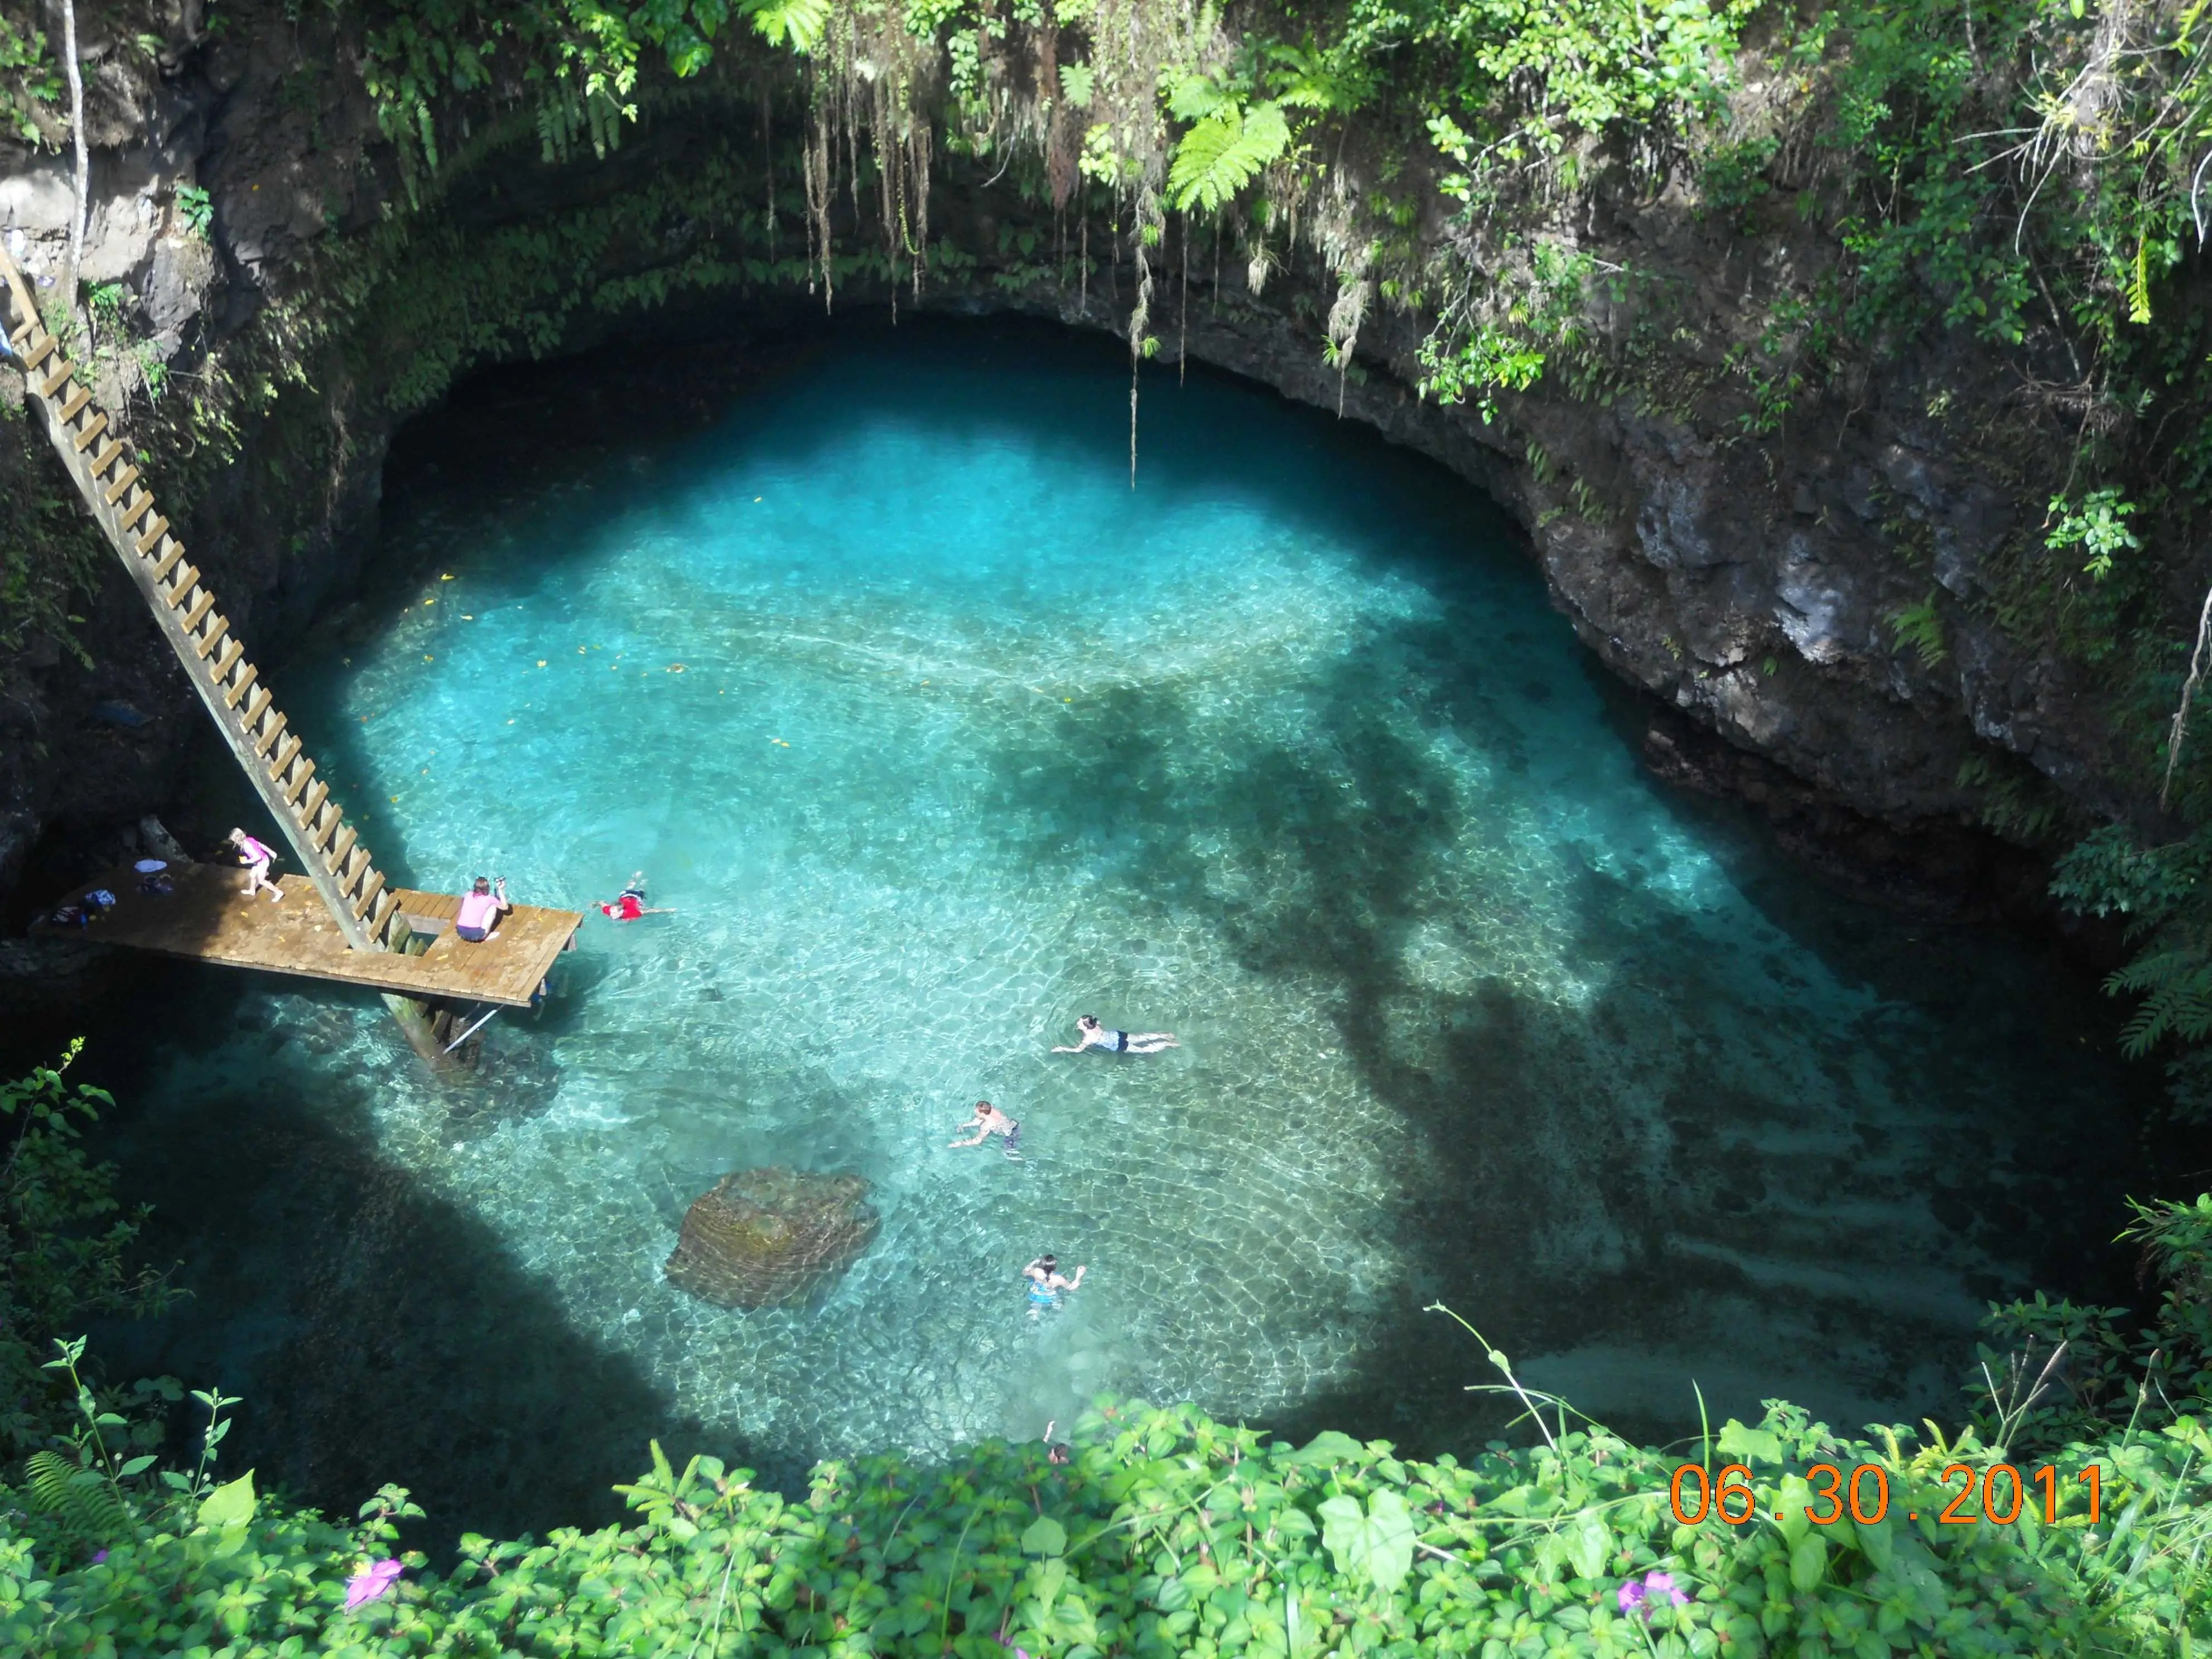 Swim in the To Sua Ocean trench, a 30-meter deep natural seawater pool surrounded by stunning gardens in the village of Lotofaga in Samoa.